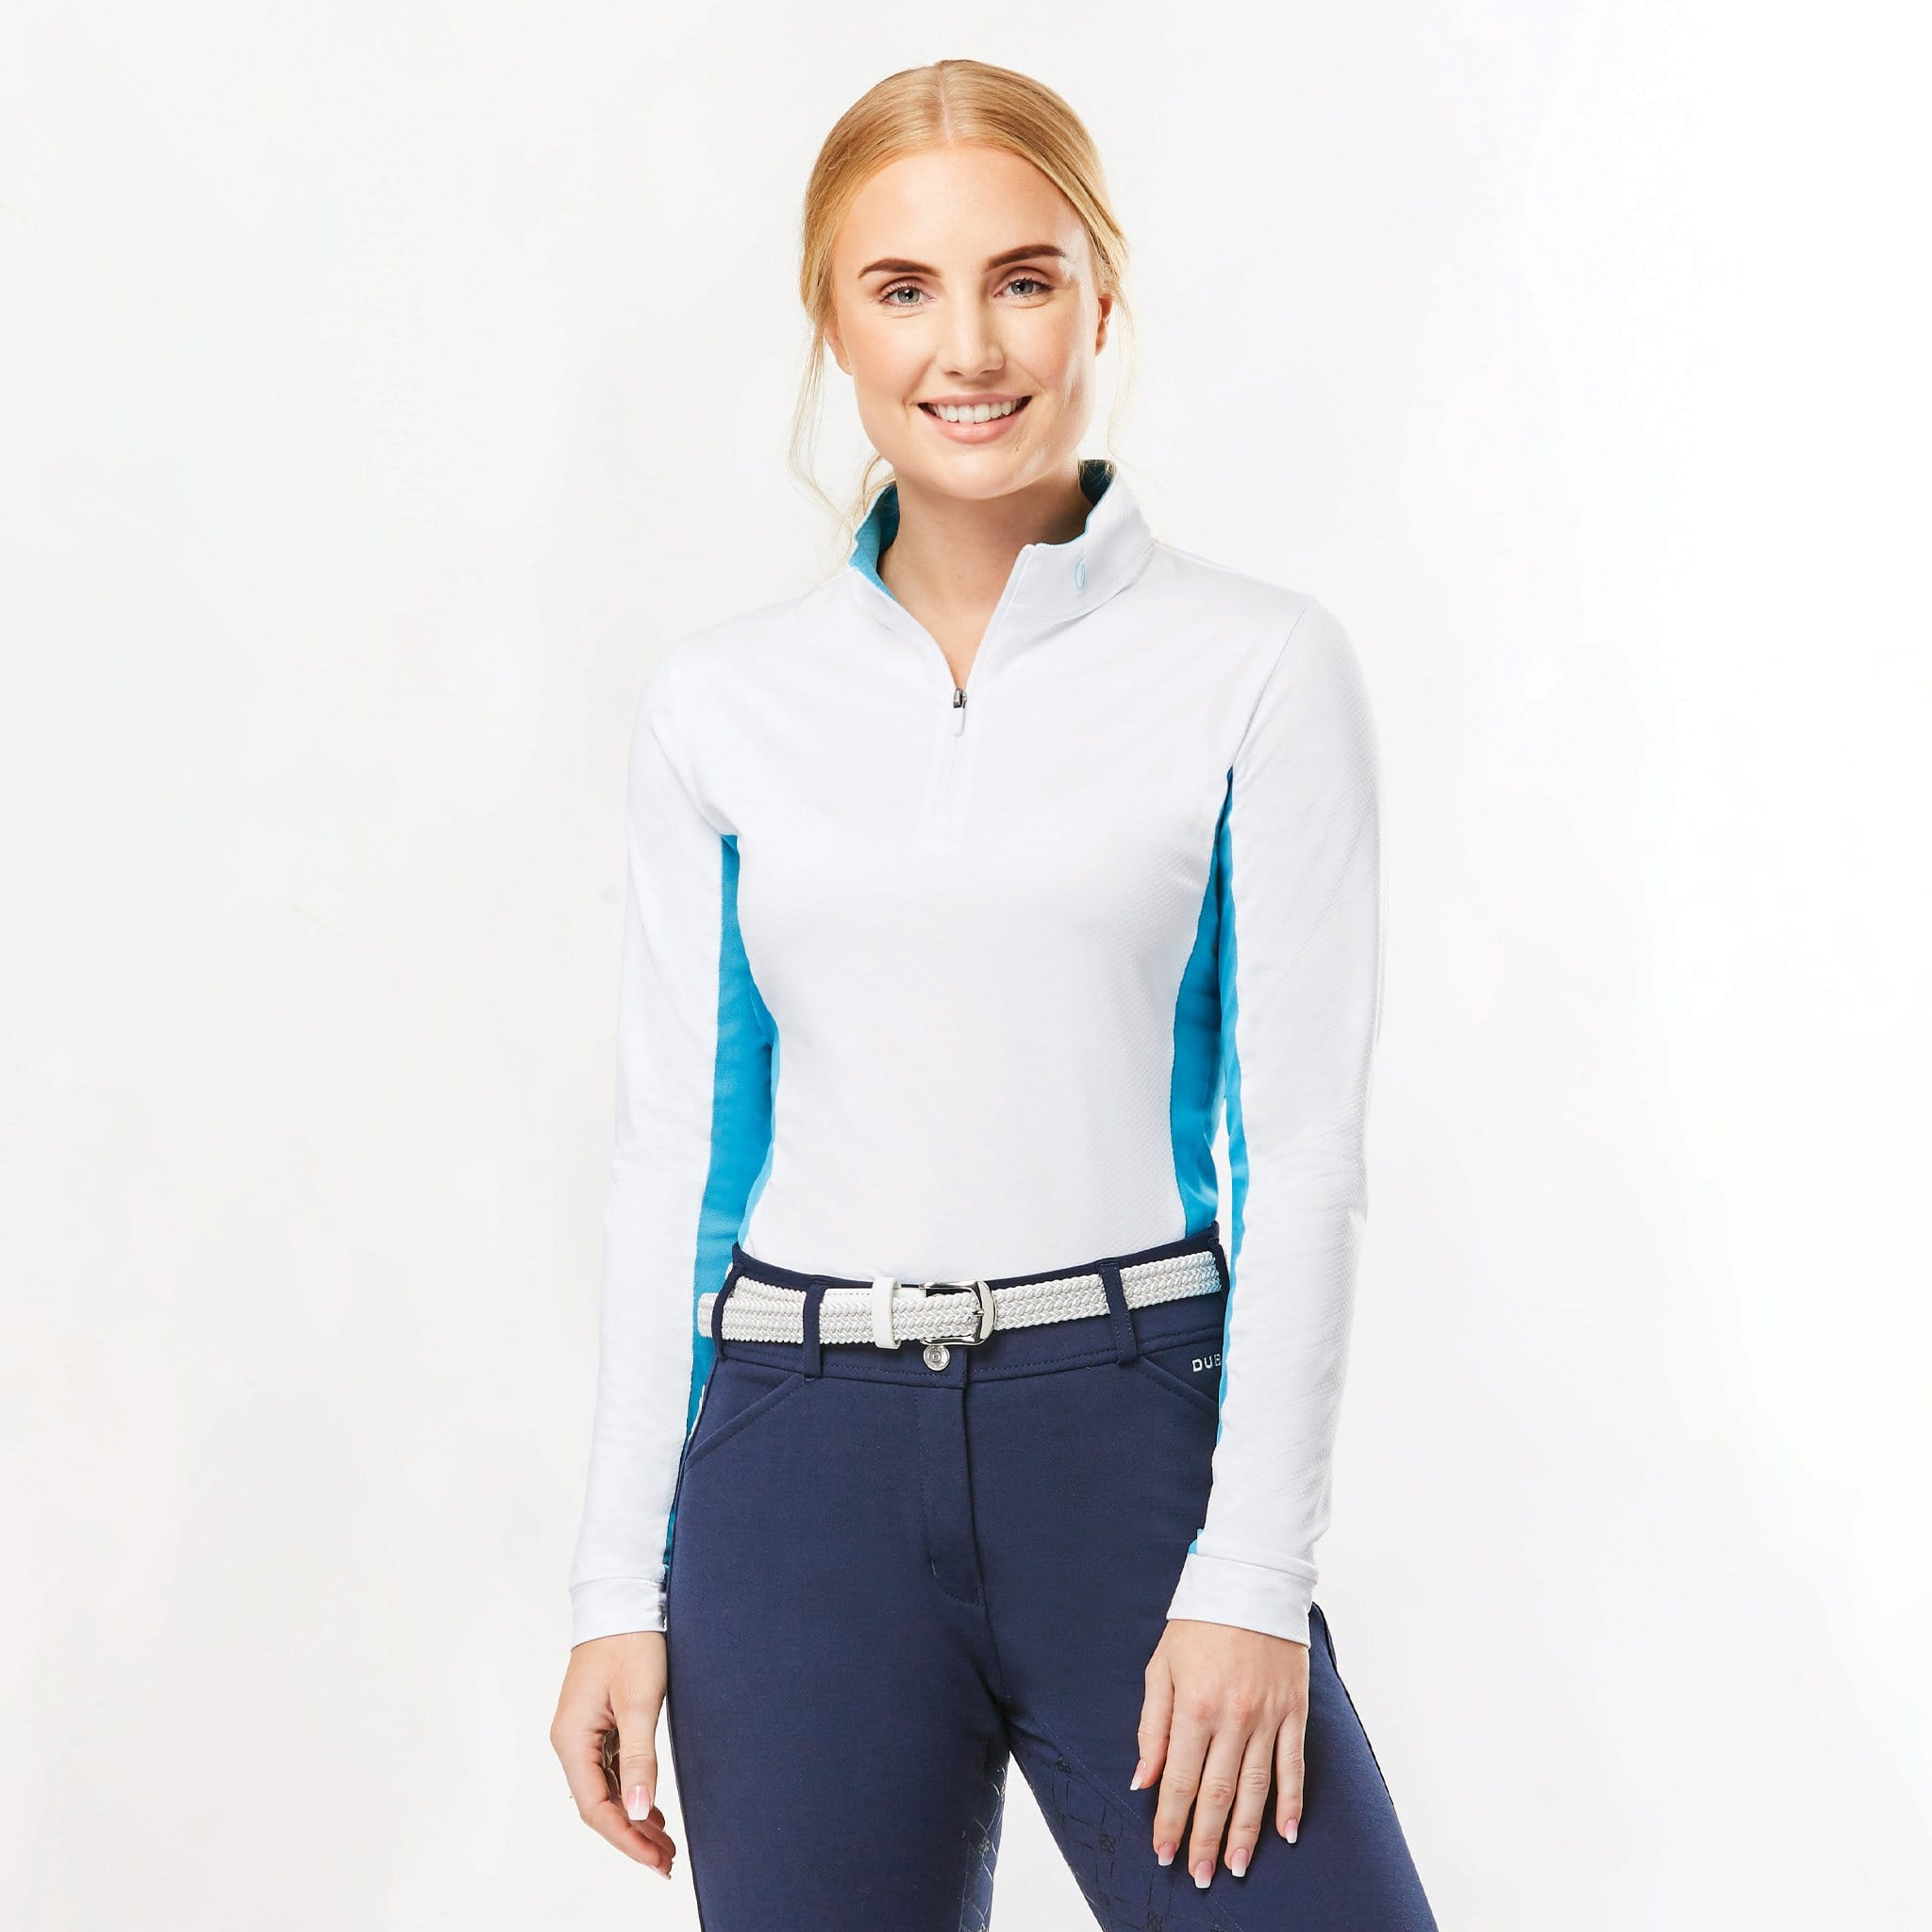 Dublin Airflow CDT Long Sleeve Tech Top 1001261003 White and Aqua On Model Front